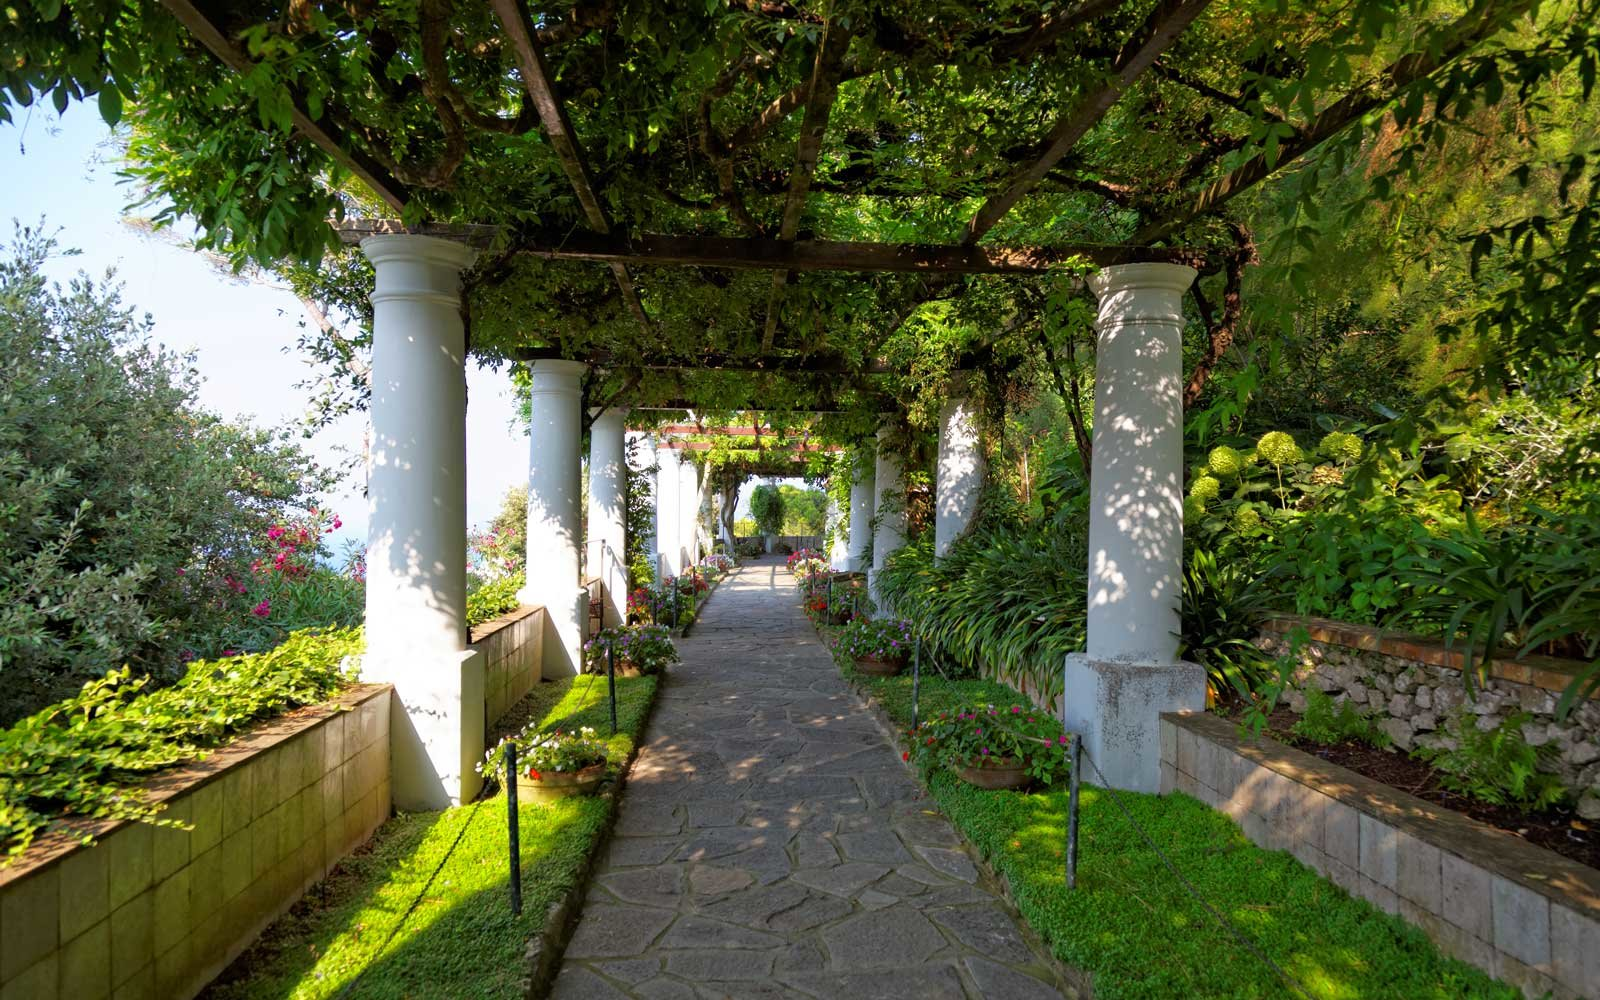 The public gardens of the Villa San Michele, Capri, Italy